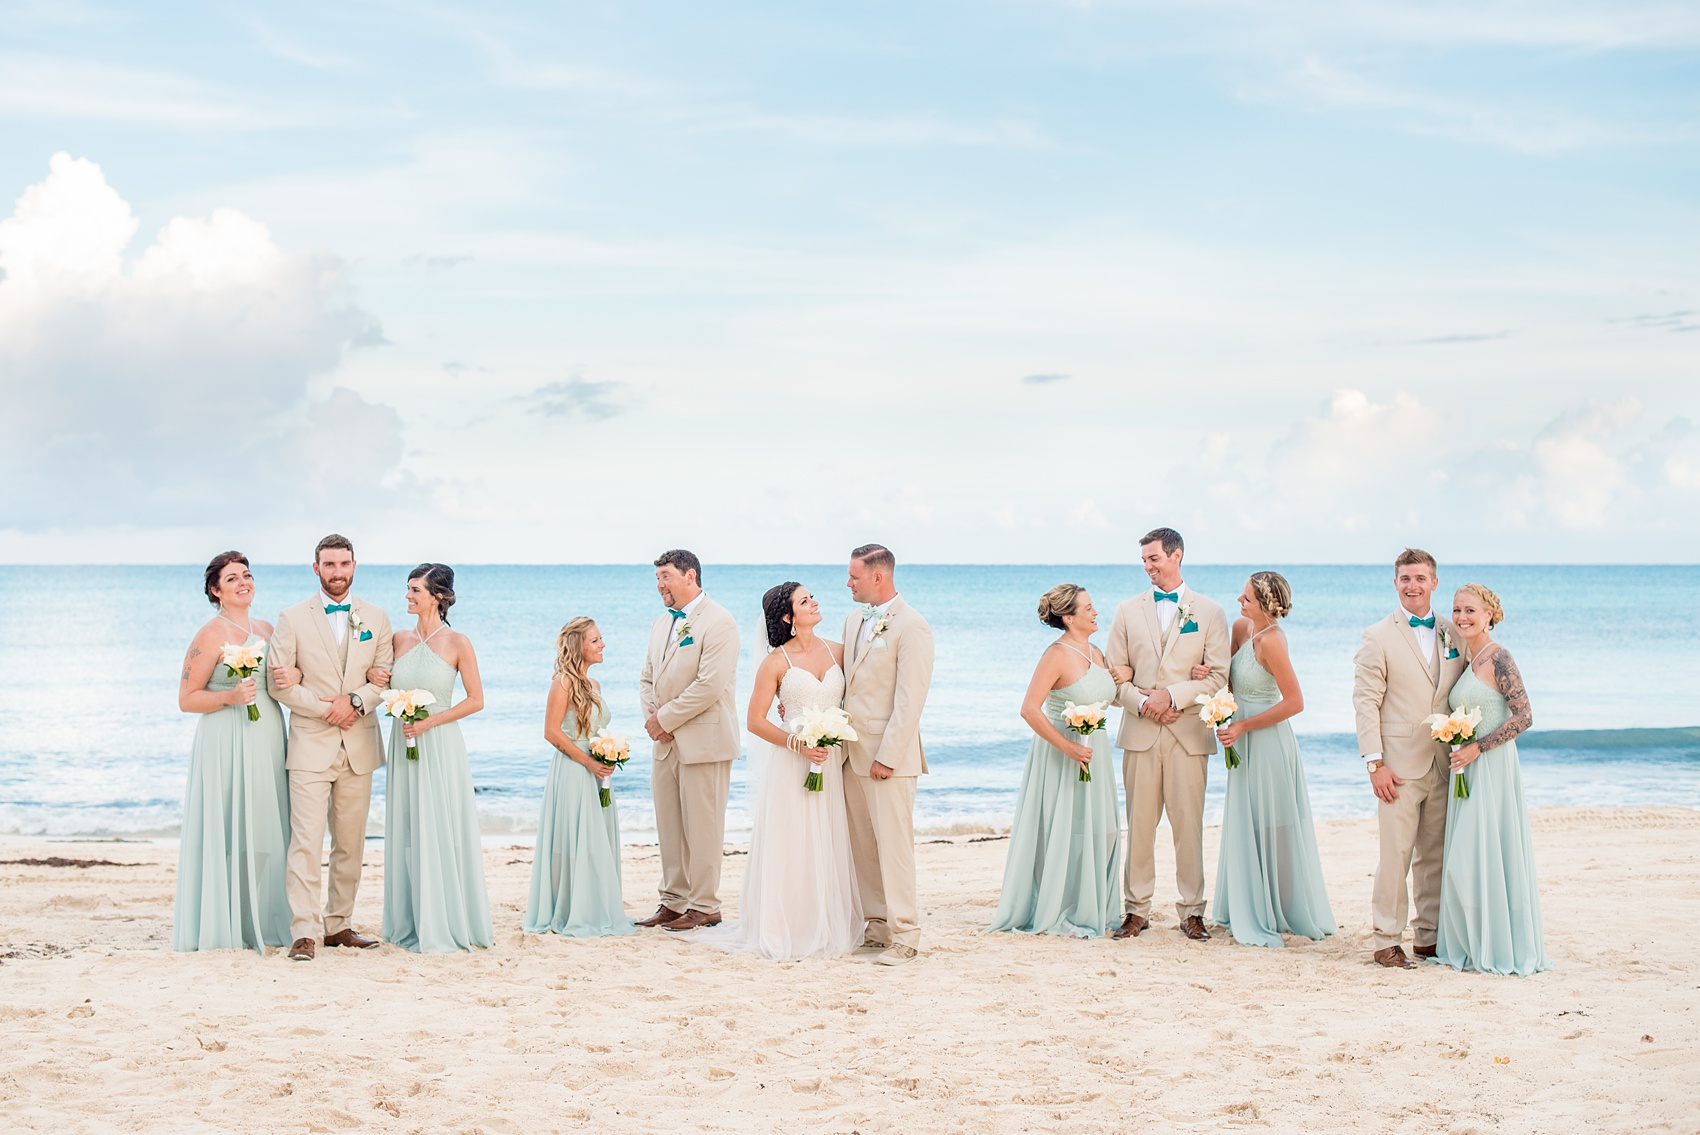 Mikkel Paige Photography photos from a wedding at Grand Paraiso, Mexico, Playa del Carmen Iberostar resort. Picture of the bridal party in mint green gowns and groomsmen in tan suits on the beach.